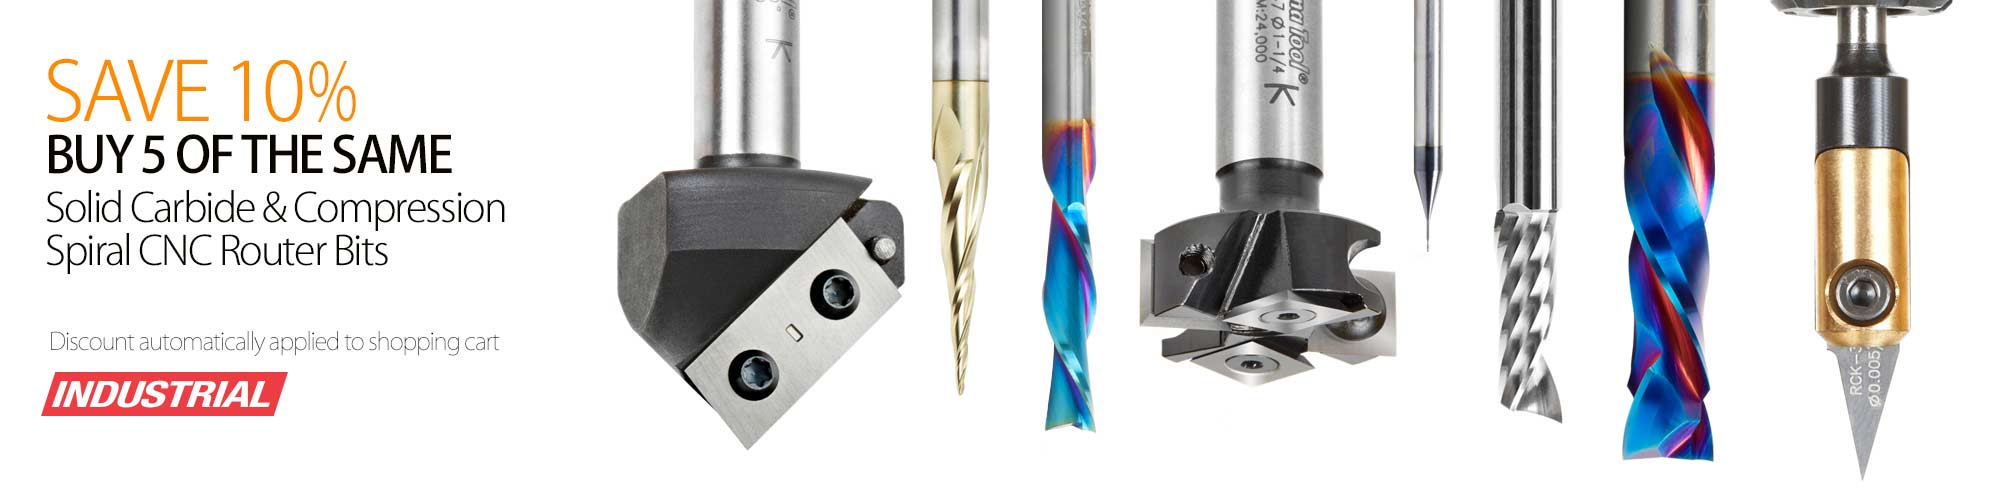 CNC Router Bits and Insert Bits